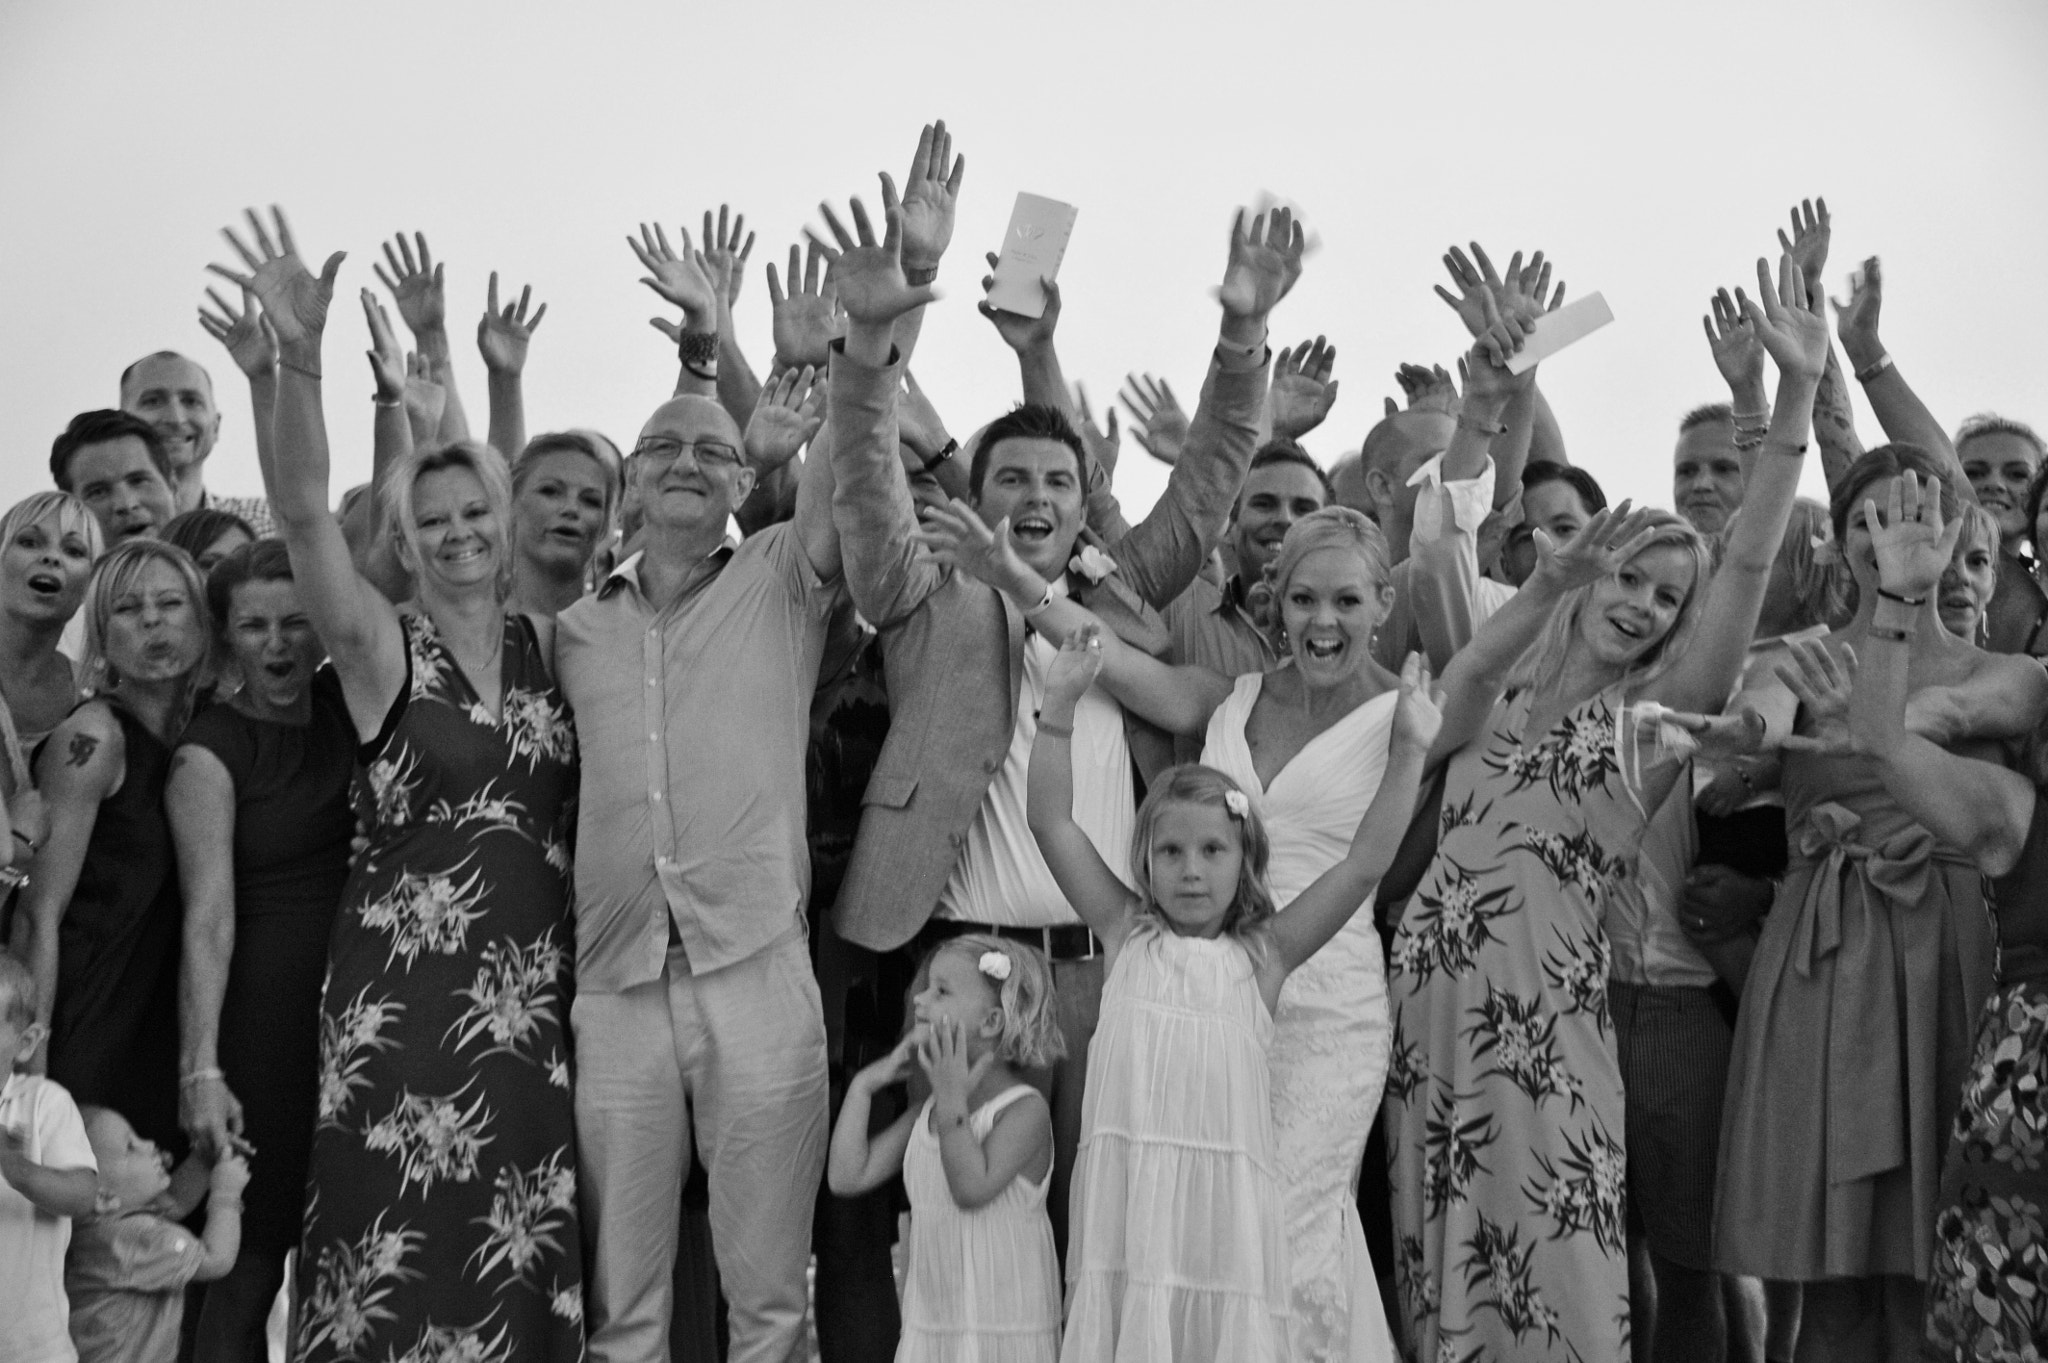 Photograph Group Photo at Wedding by Johan Dahlberg on 500px